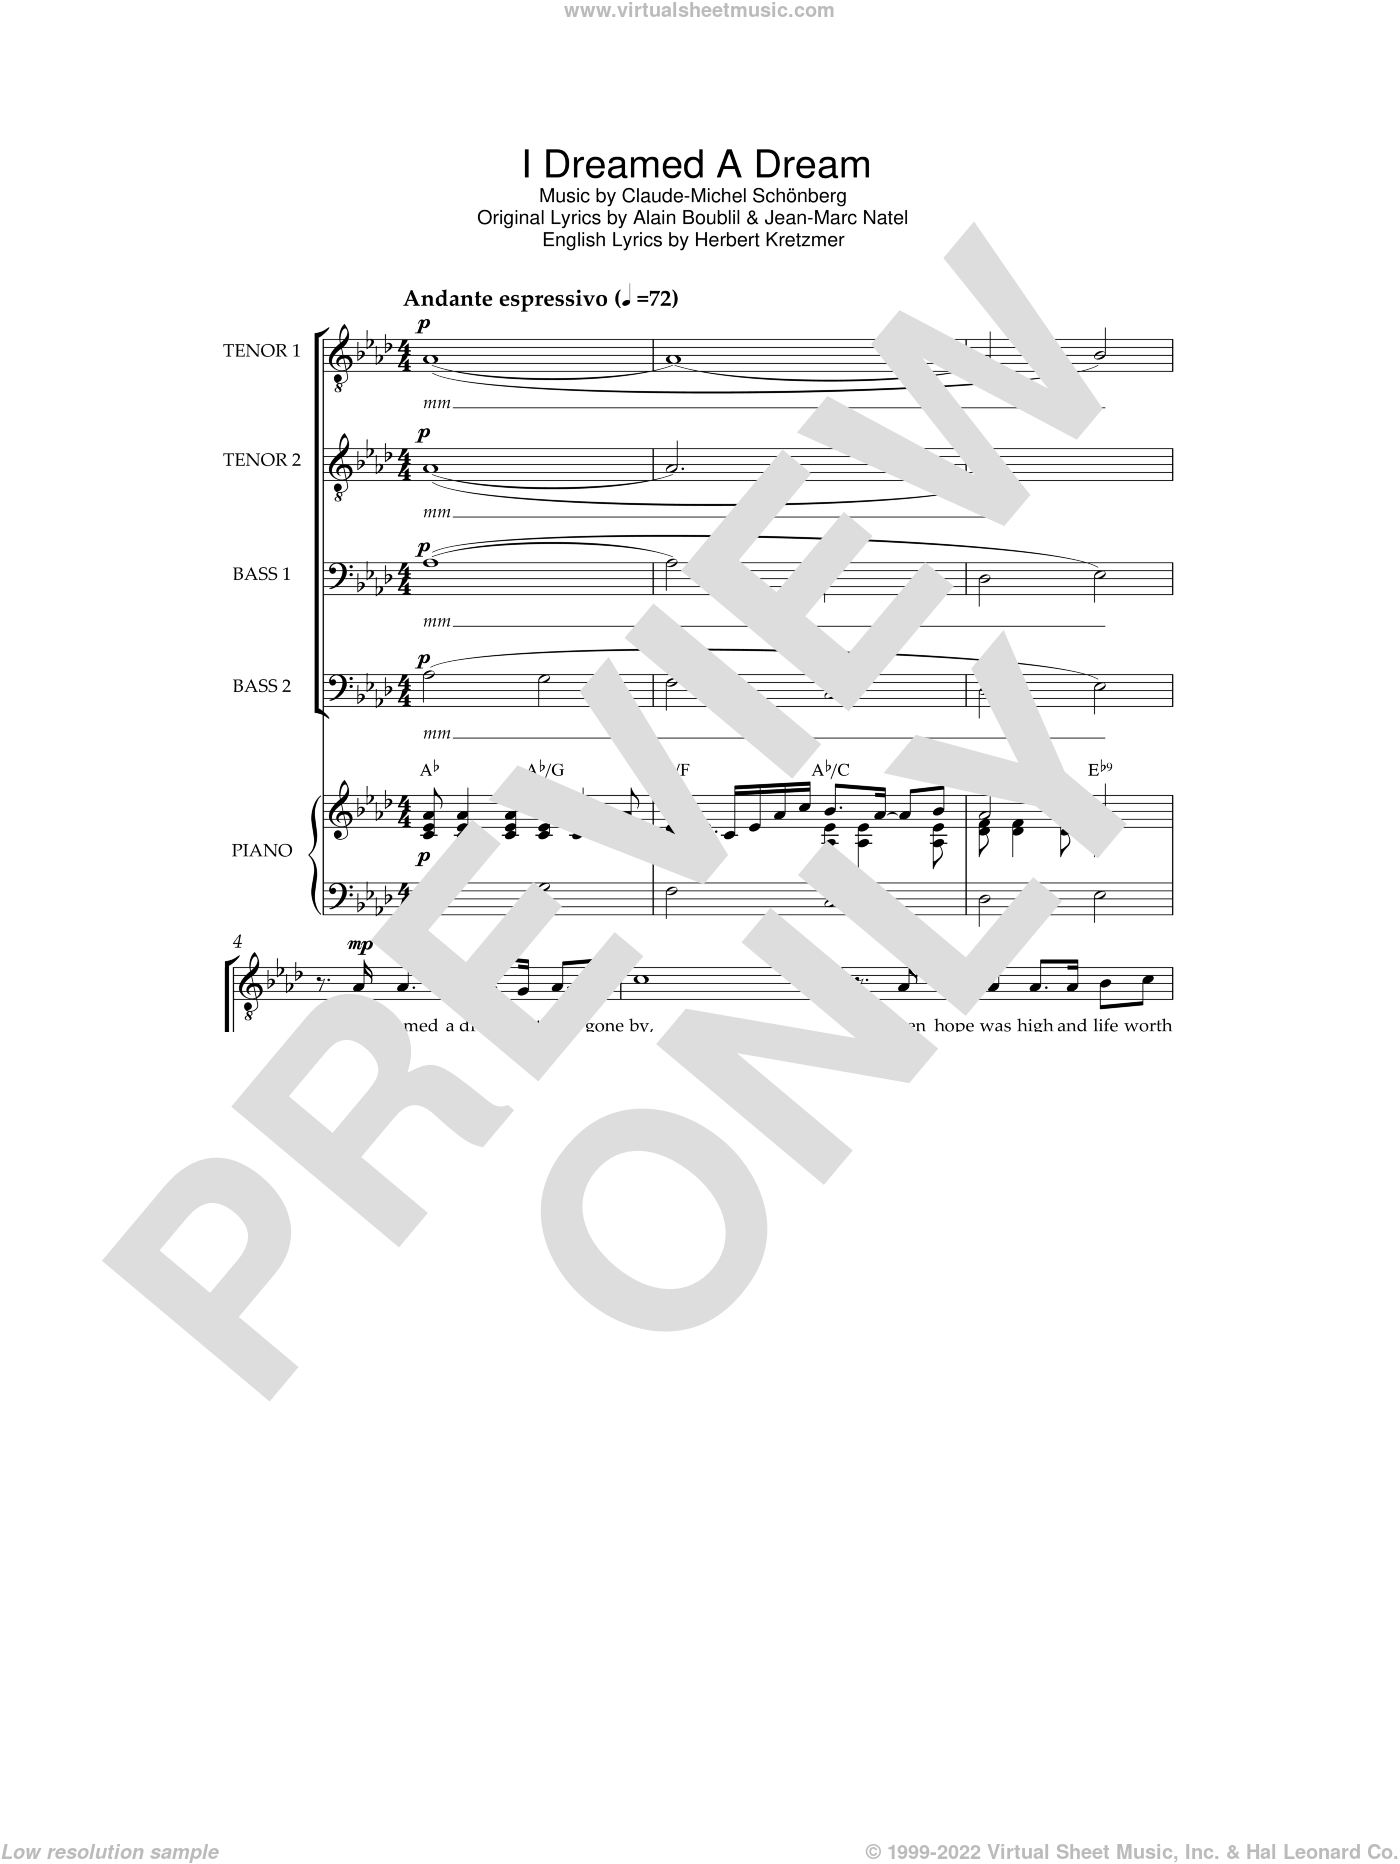 I Dreamed A Dream (from 'Les Miserables') sheet music for voice, piano or guitar by Les Miserables, Alain Boublil, Claude-Michel Schonberg, Herbert Kretzmer and Jean-Marc Natel, intermediate skill level